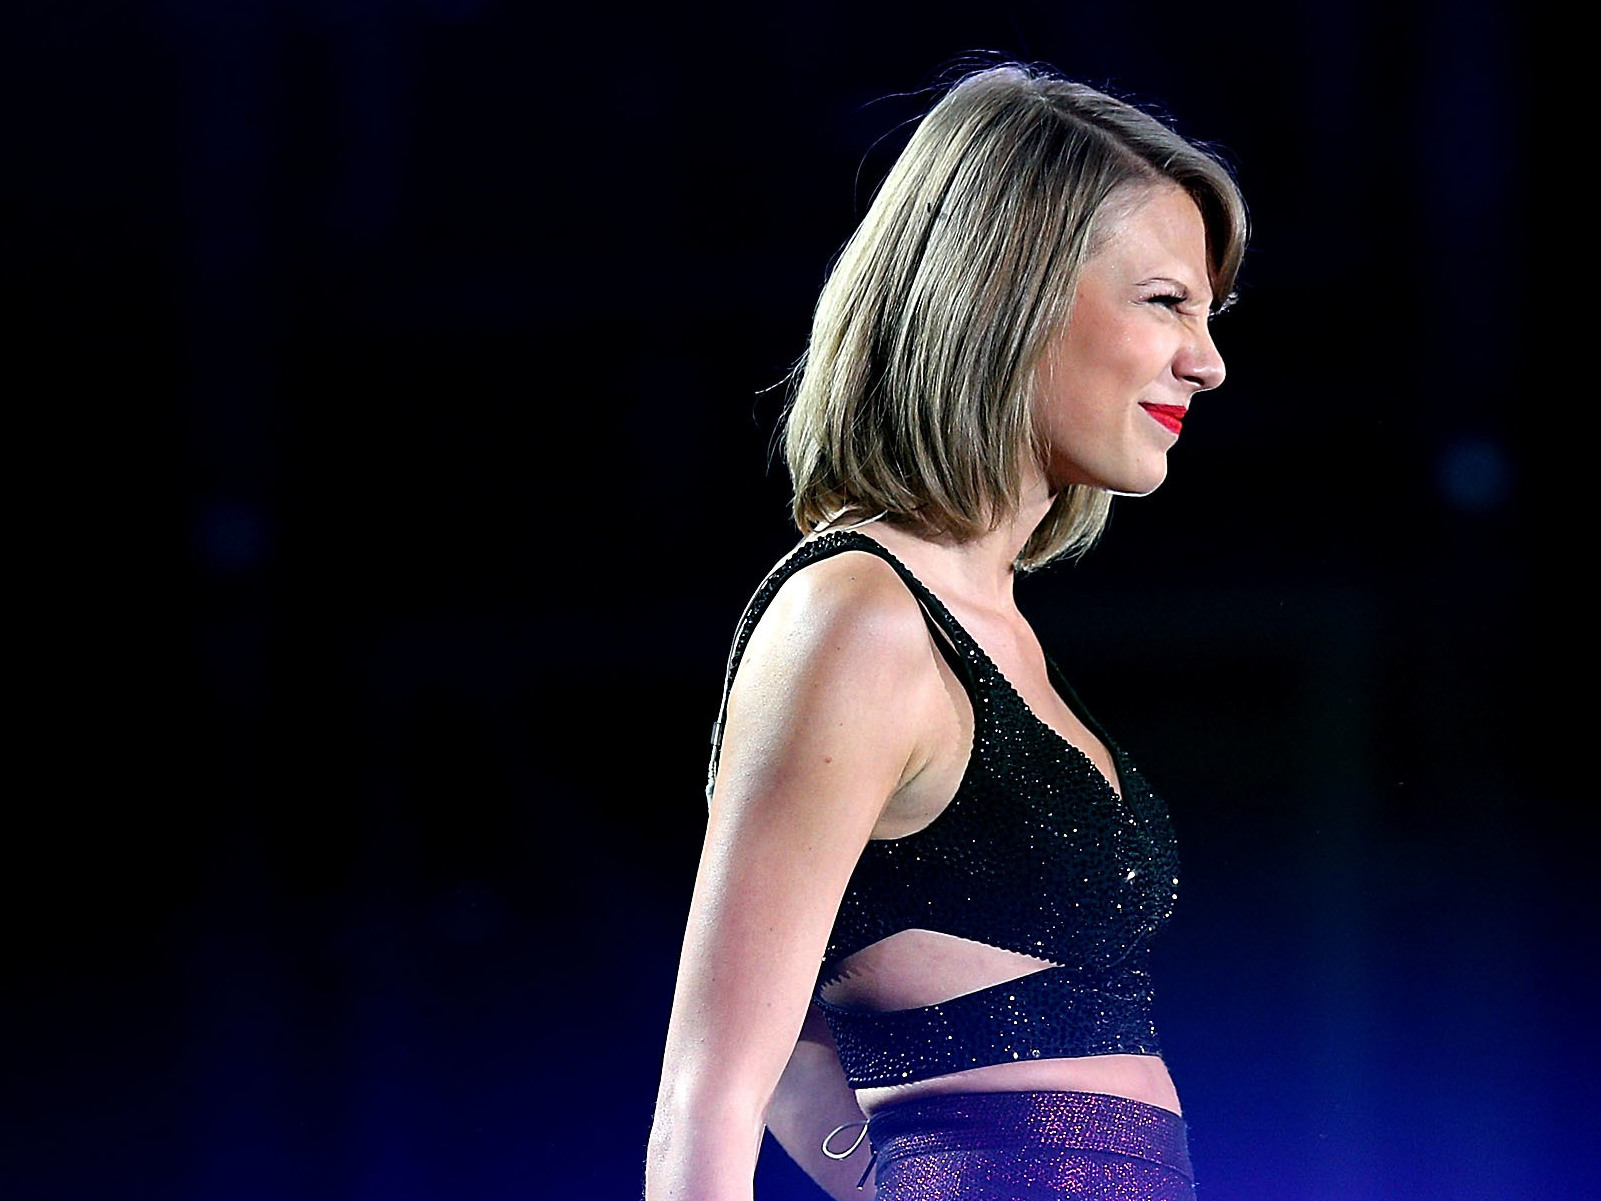 Taylor Swift returns to streaming sites